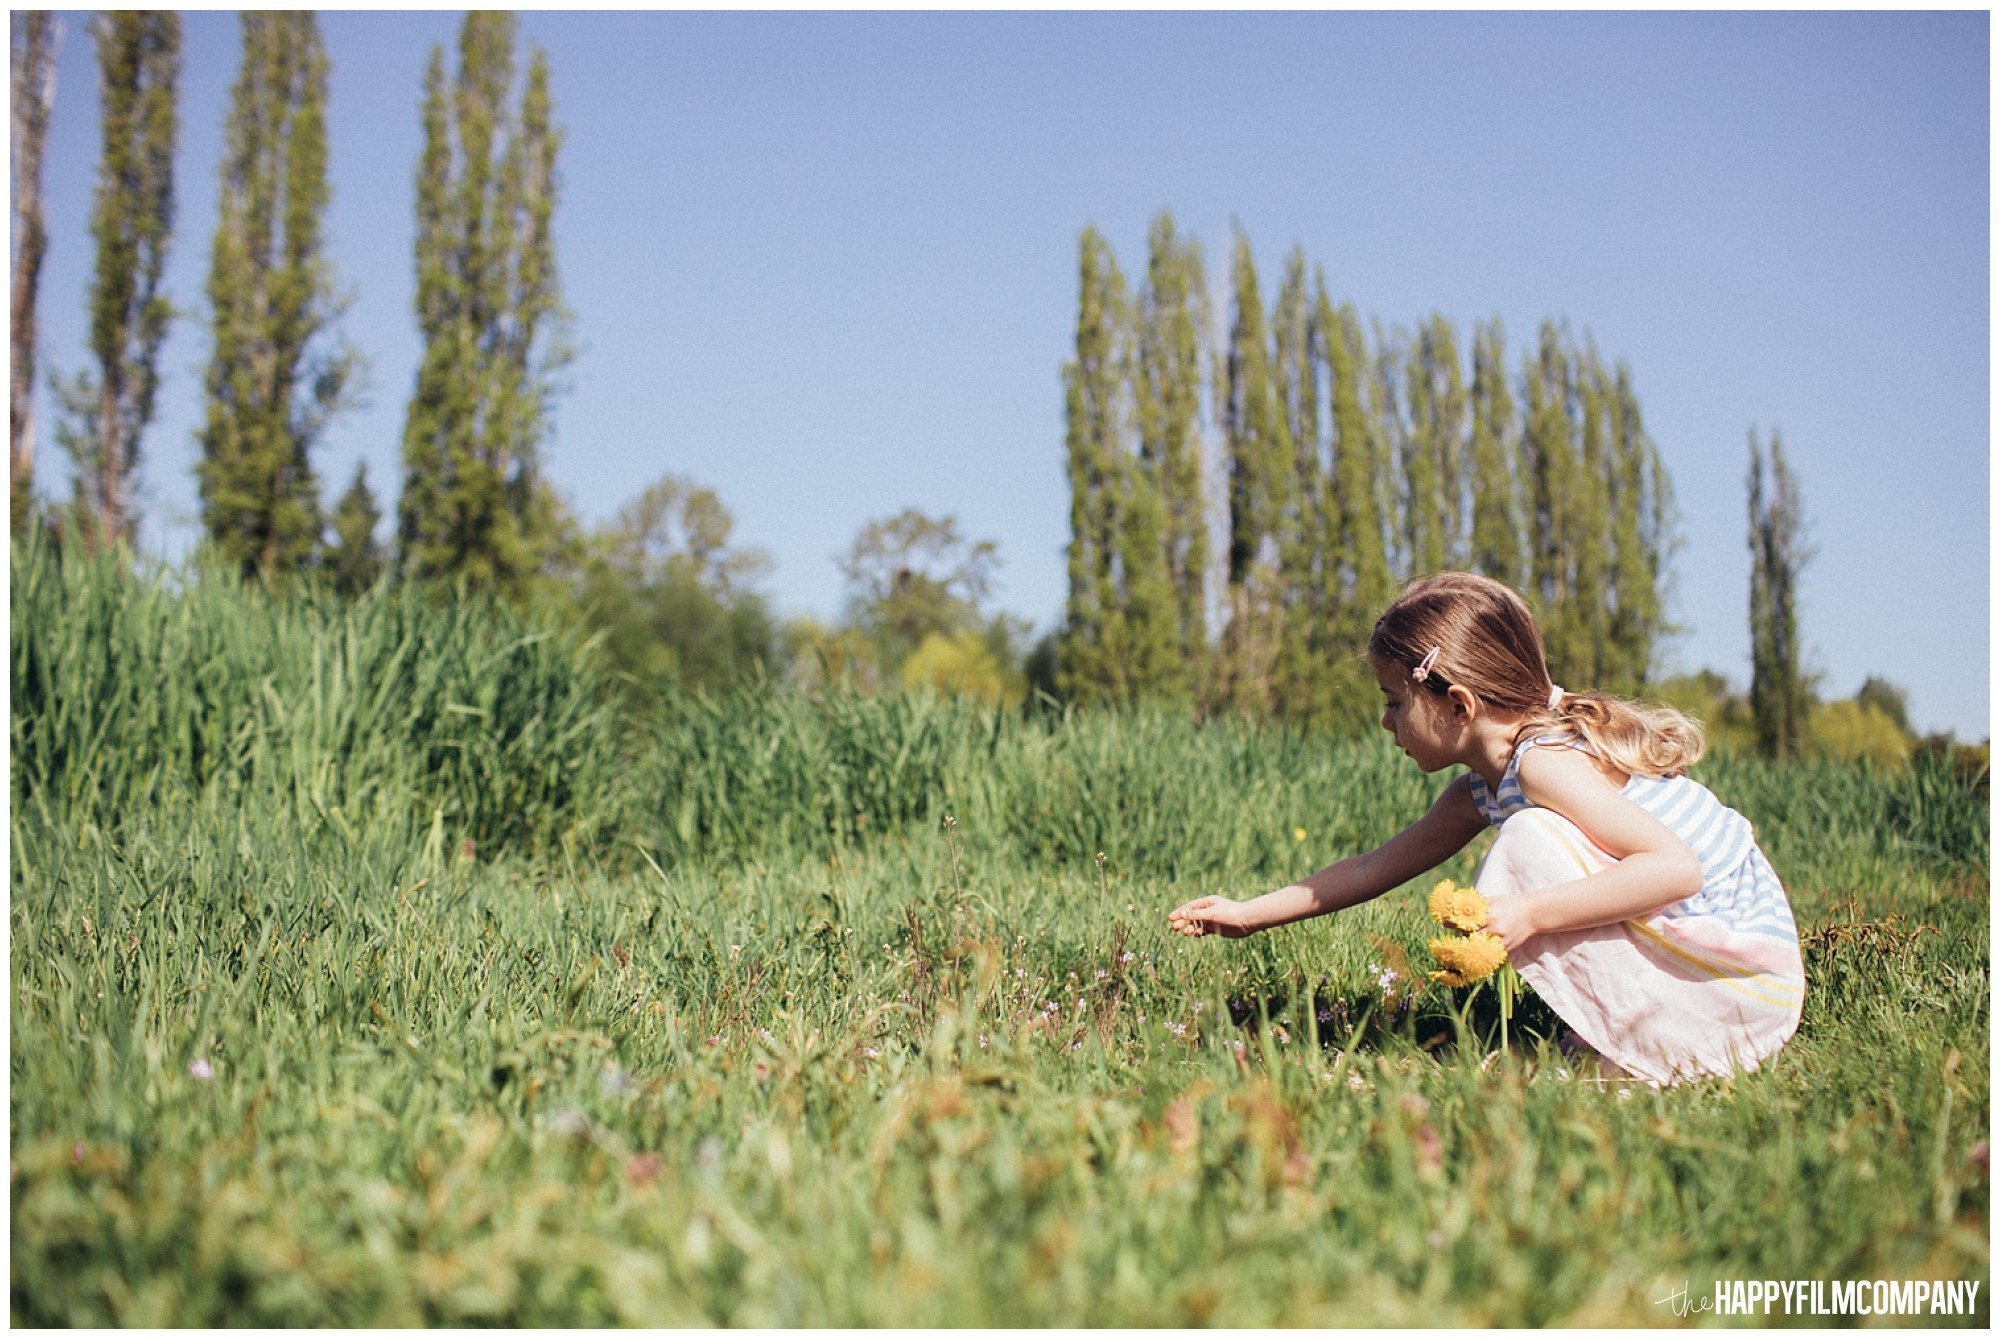 the Happy Film Company - Seattle Family Photography - Father Daughter Portraits - Redmond Grass Field Dandelion little girl picking flowers